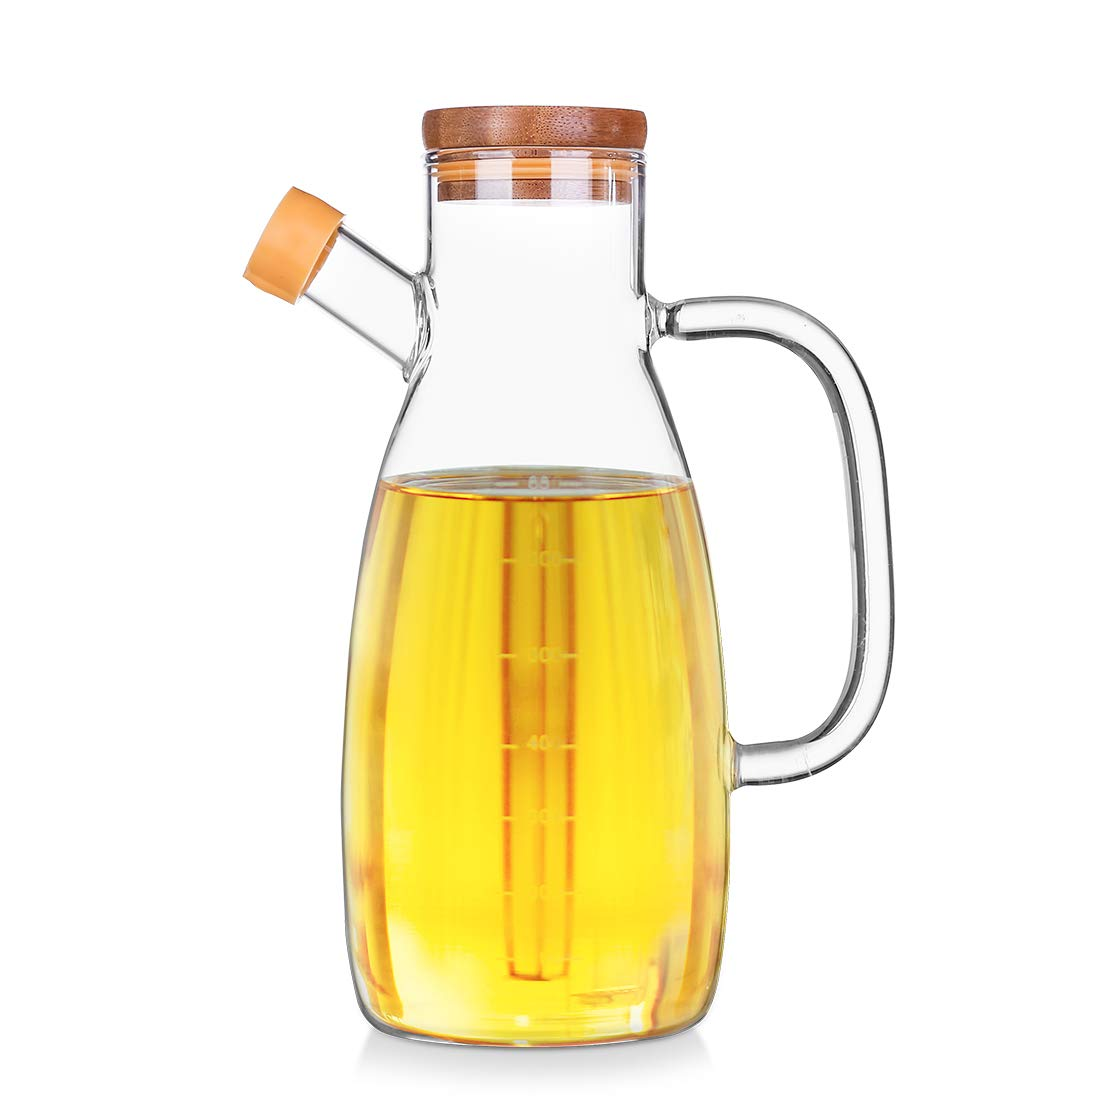 Goodeserve No Drip Glass Oil & Vinegar Dispenser Bottle with Wooden Lid, Cruet Jug with Scale, 700ML GD18122